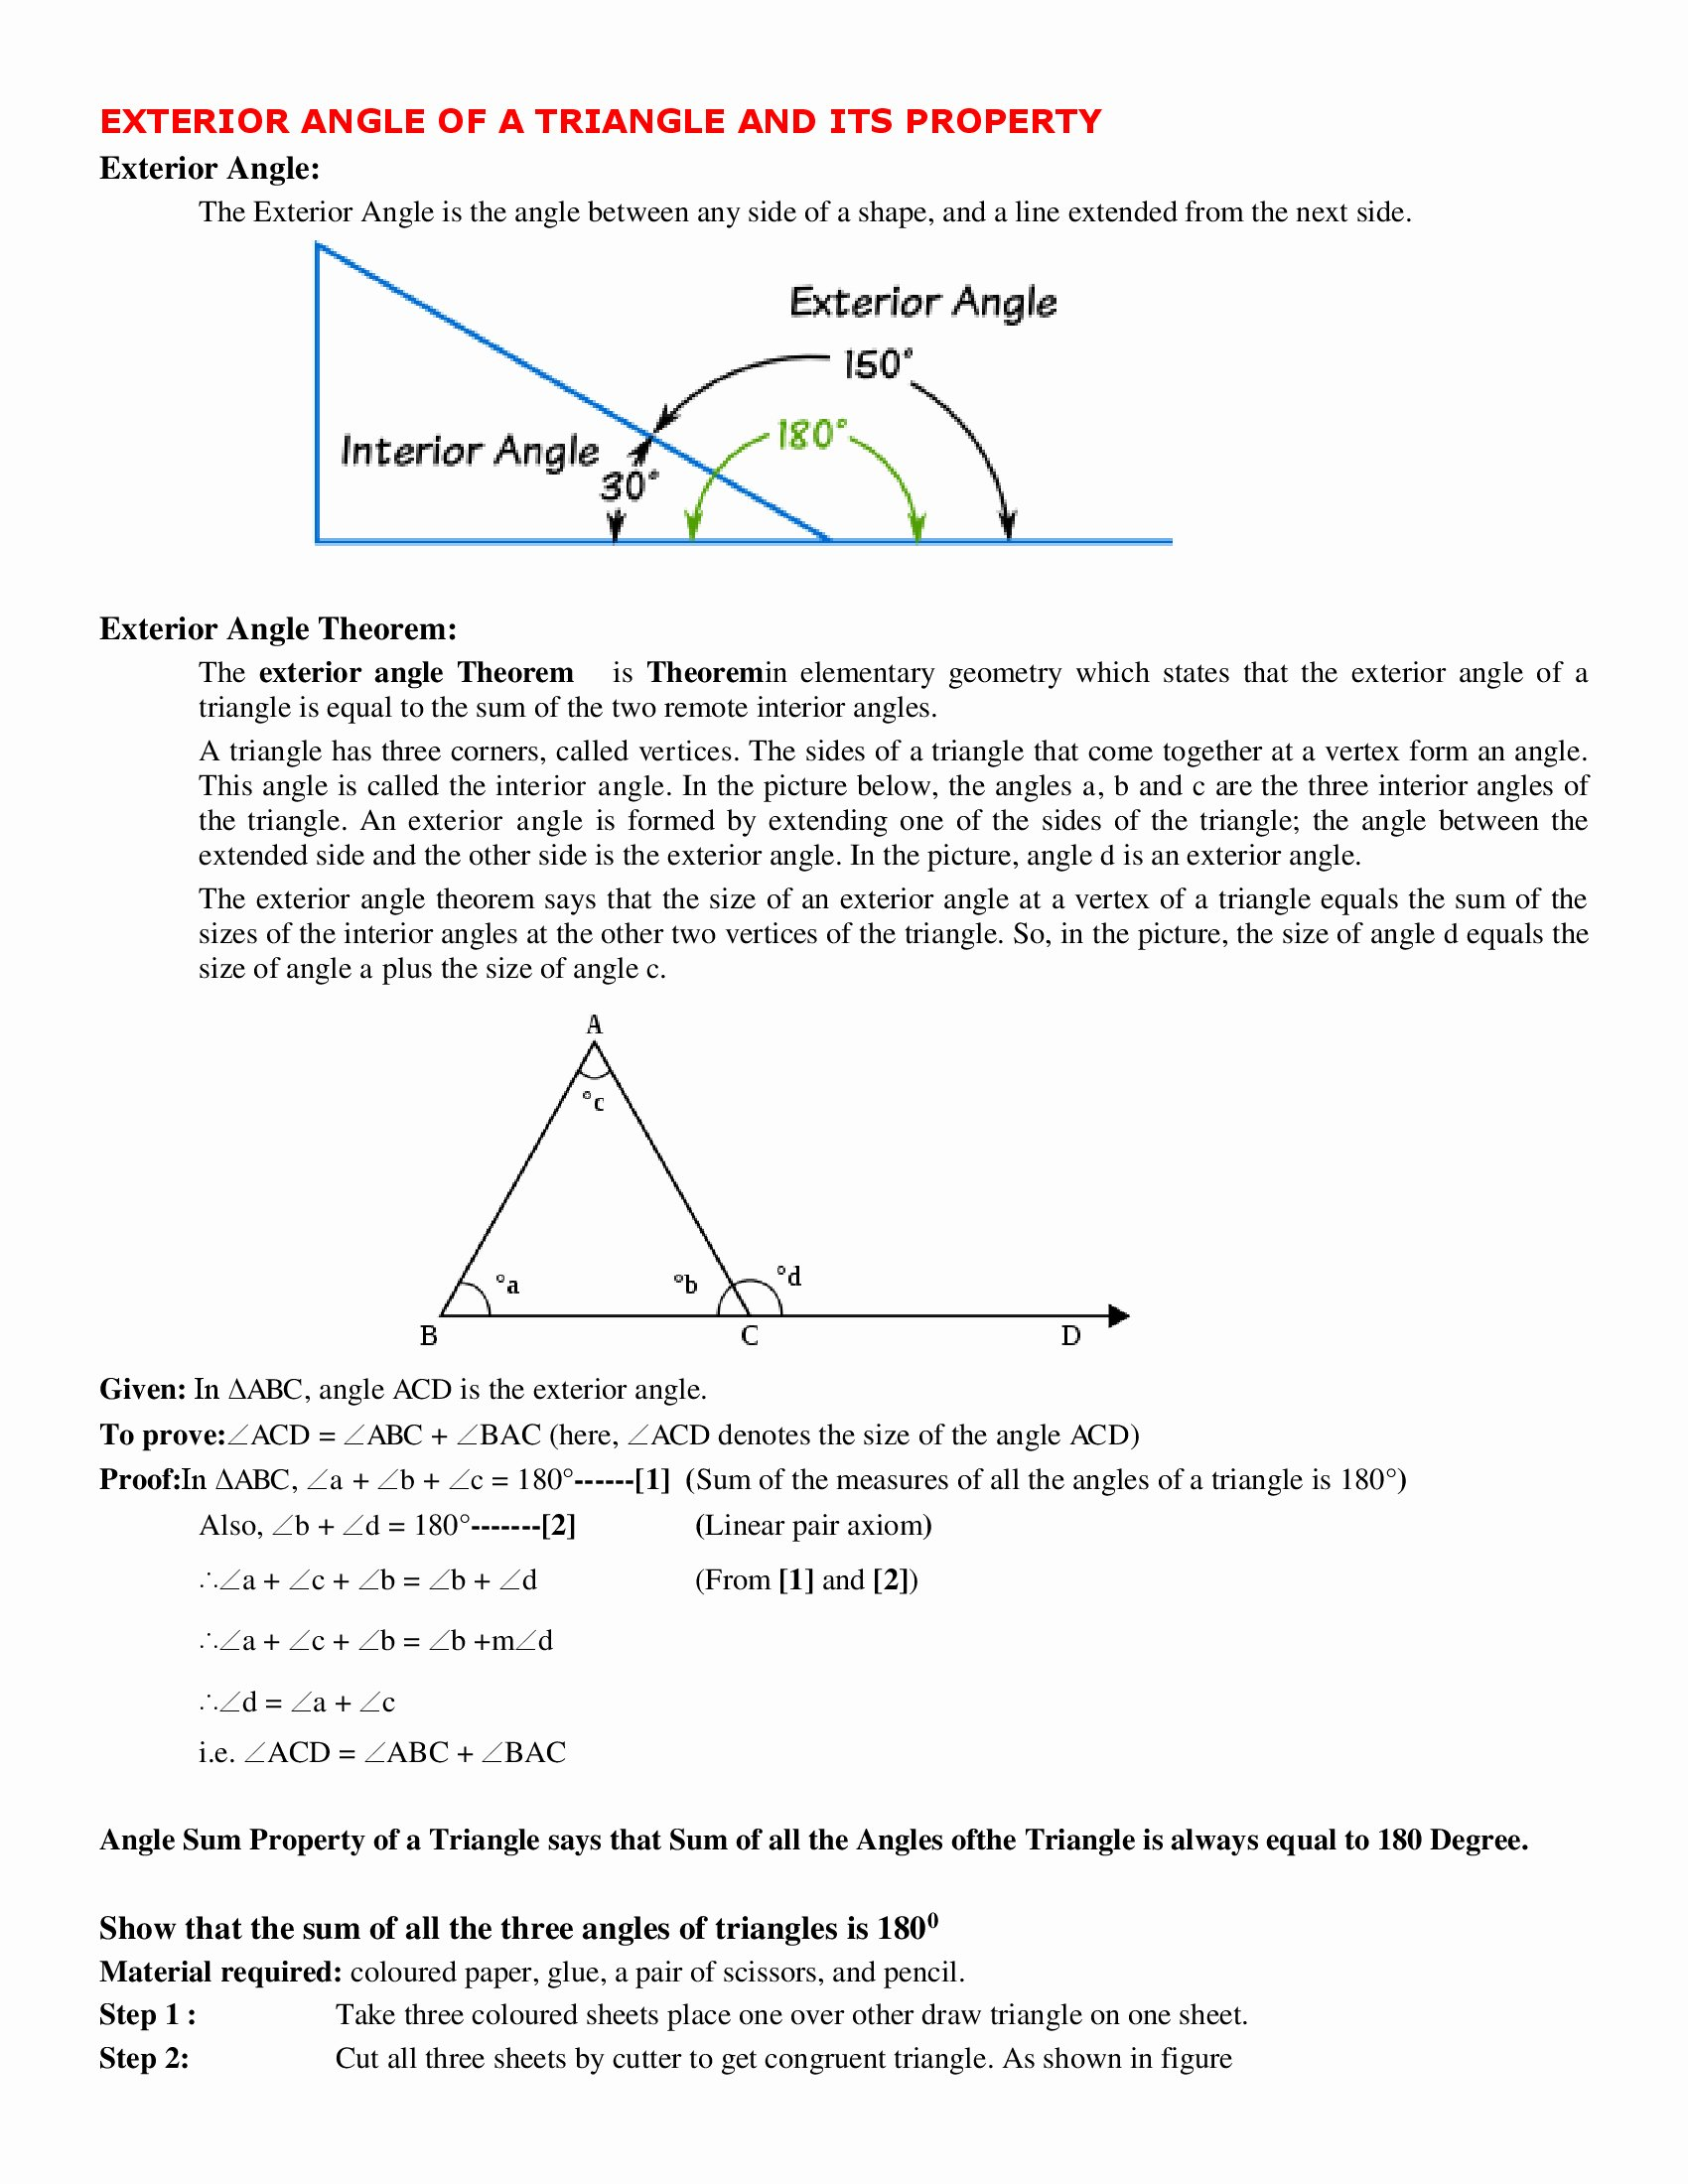 Exterior Angle theorem Worksheet Inspirational Exterior Angle Of A Triangle and Its Property Worksheet